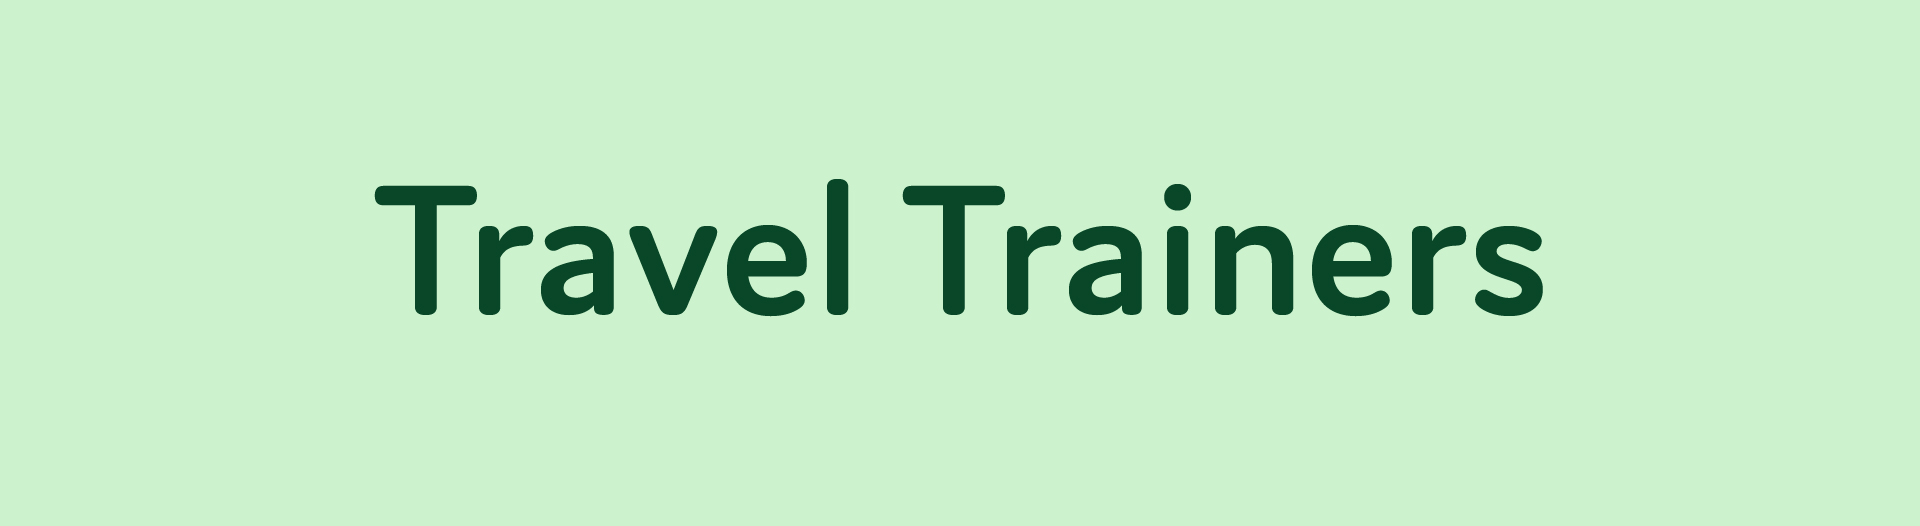 Travel Trainers-01